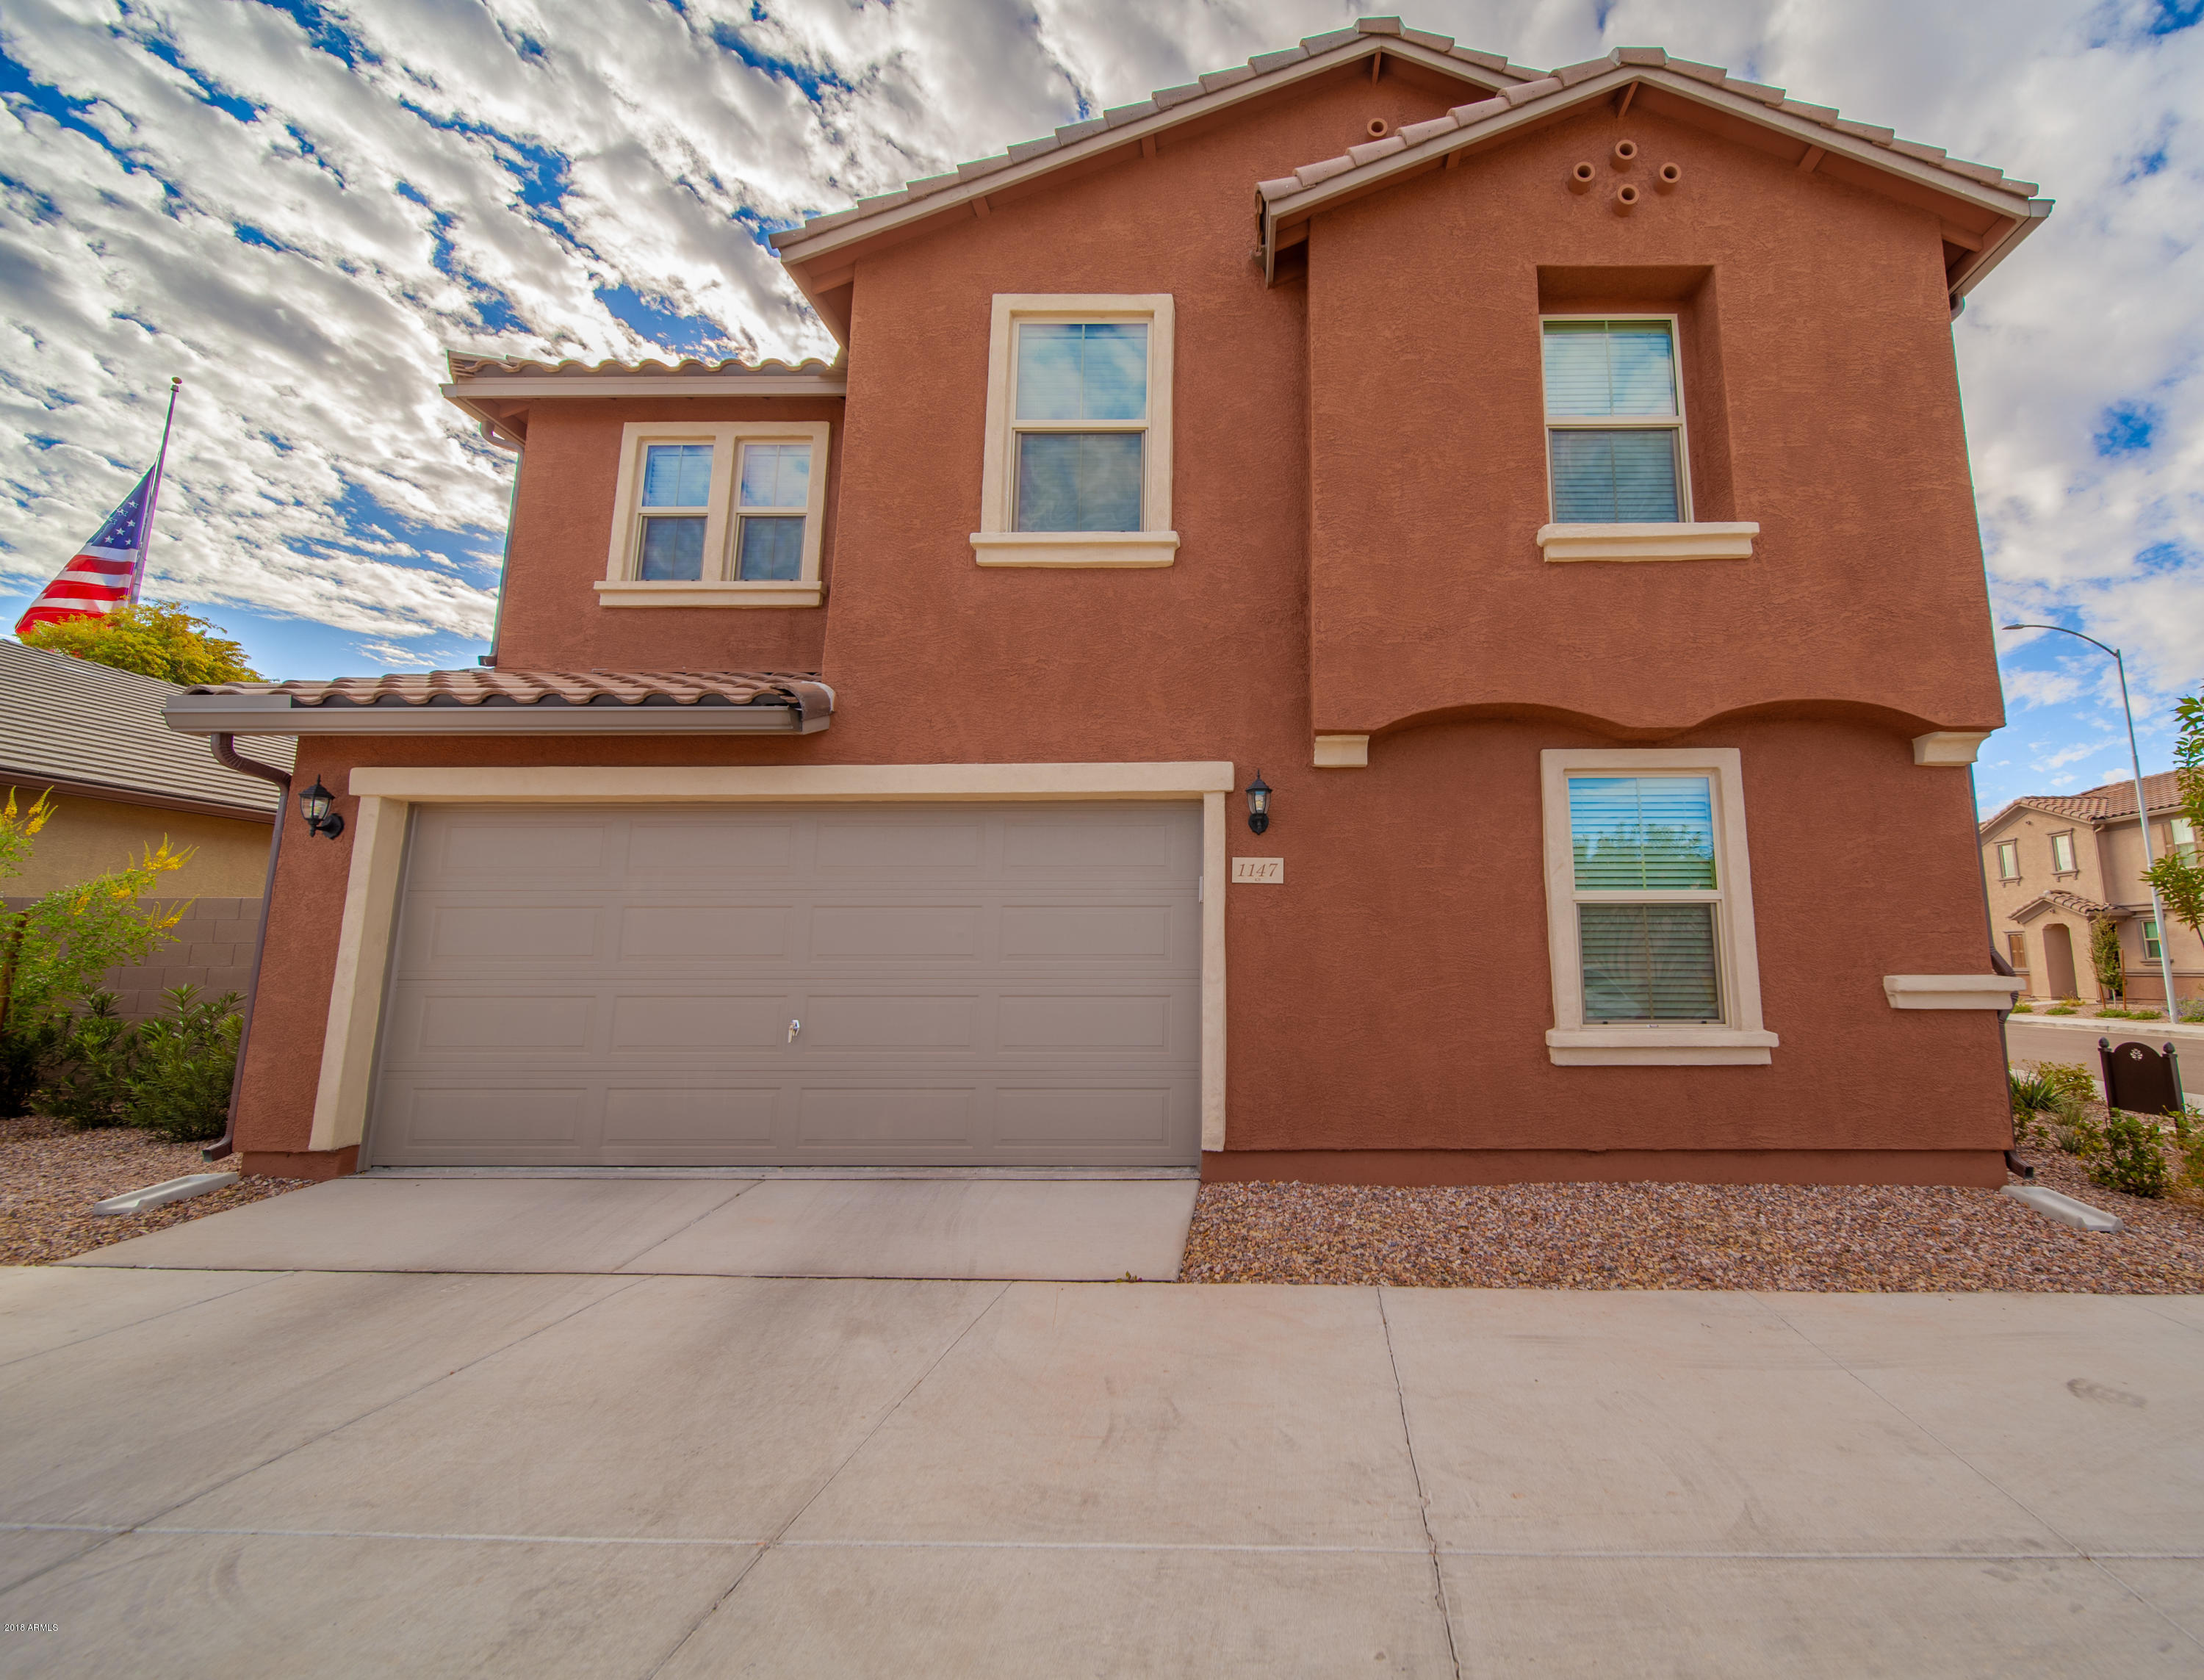 Photo of 1147 S SAWYER --, Mesa, AZ 85208